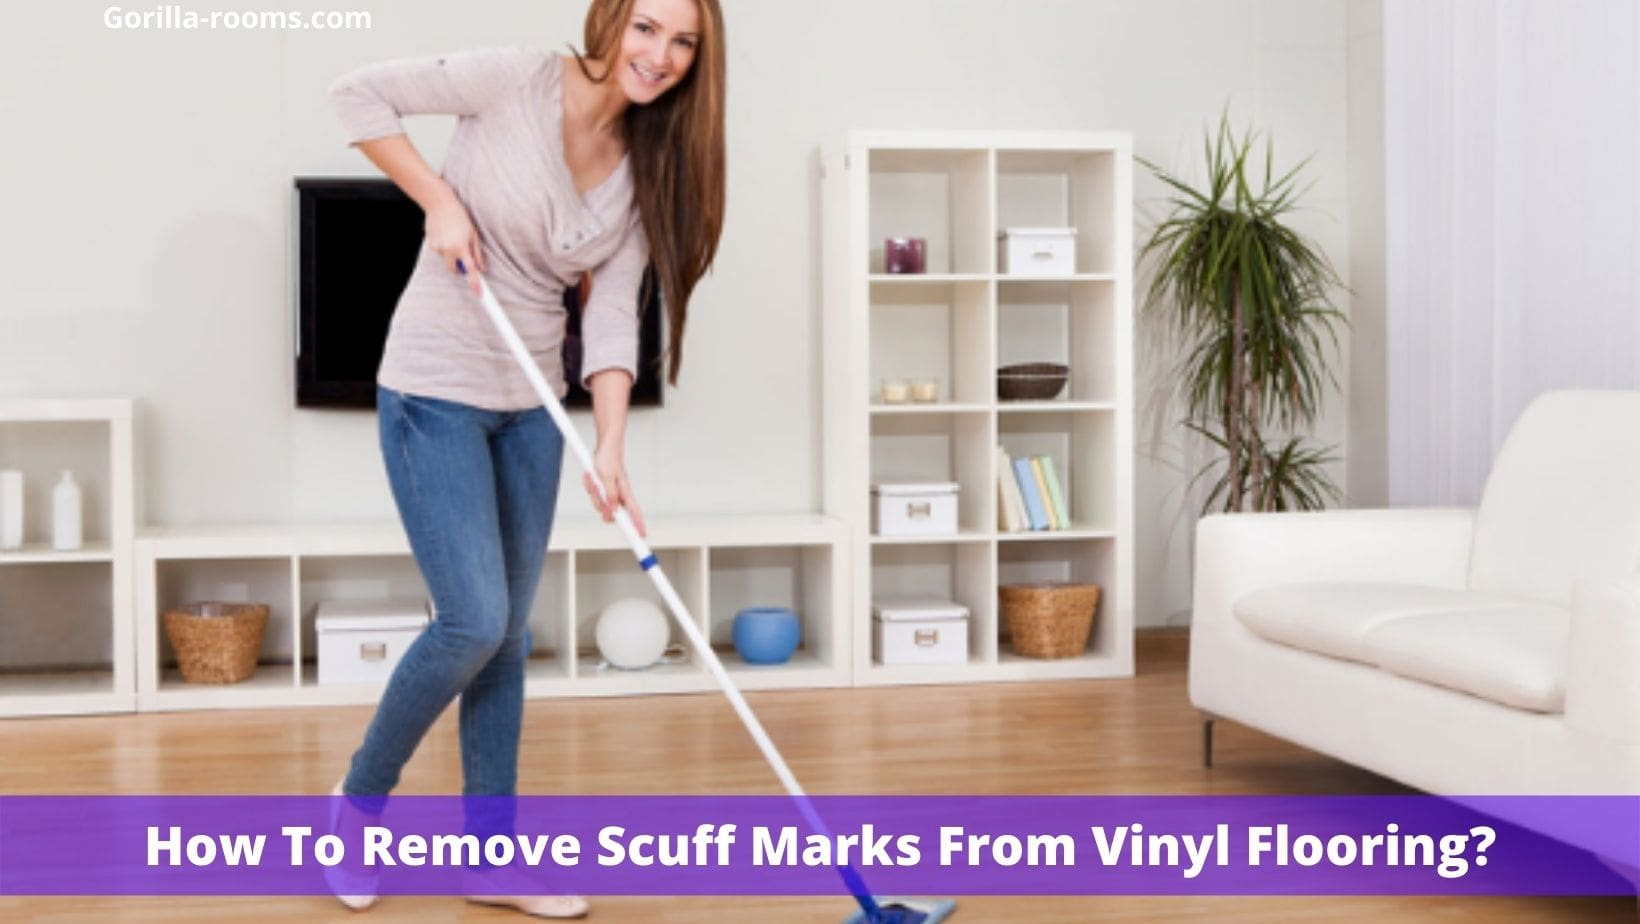 How To Remove Scuff Marks From Vinyl Flooring